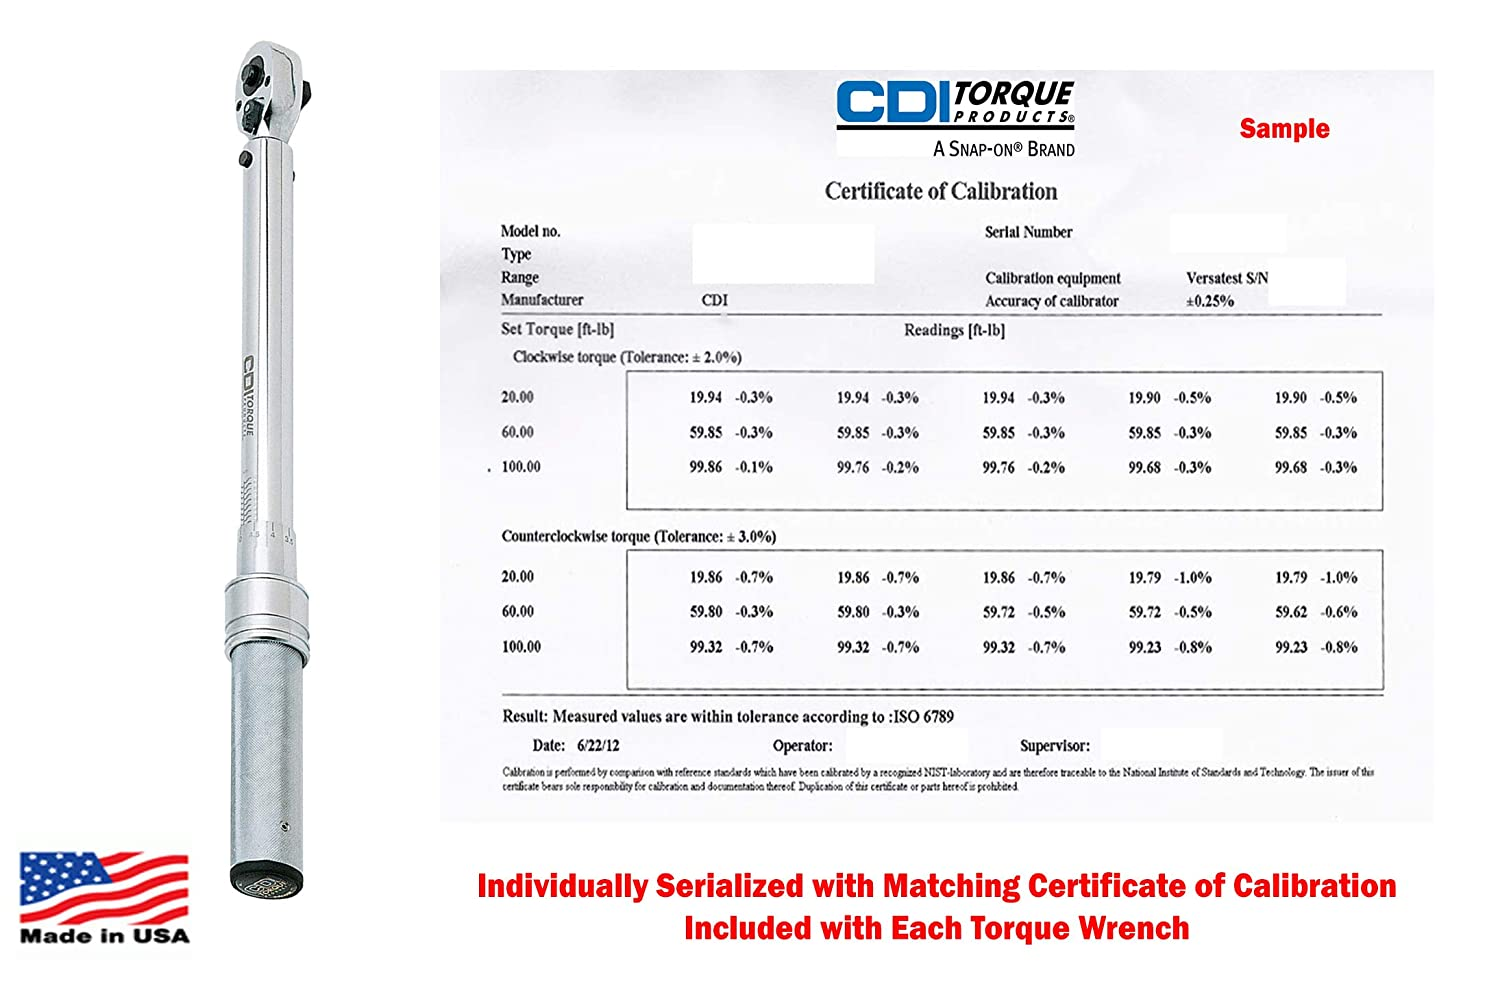 CDI Torque Products A Snap-On Company 1//2 Drive 30-250 Ft Lbs 47-332 NM Dual Scale Micrometer Adjustable Metal Handle Torque Wrench Individually Serialized with Matching Certificate of Calibration